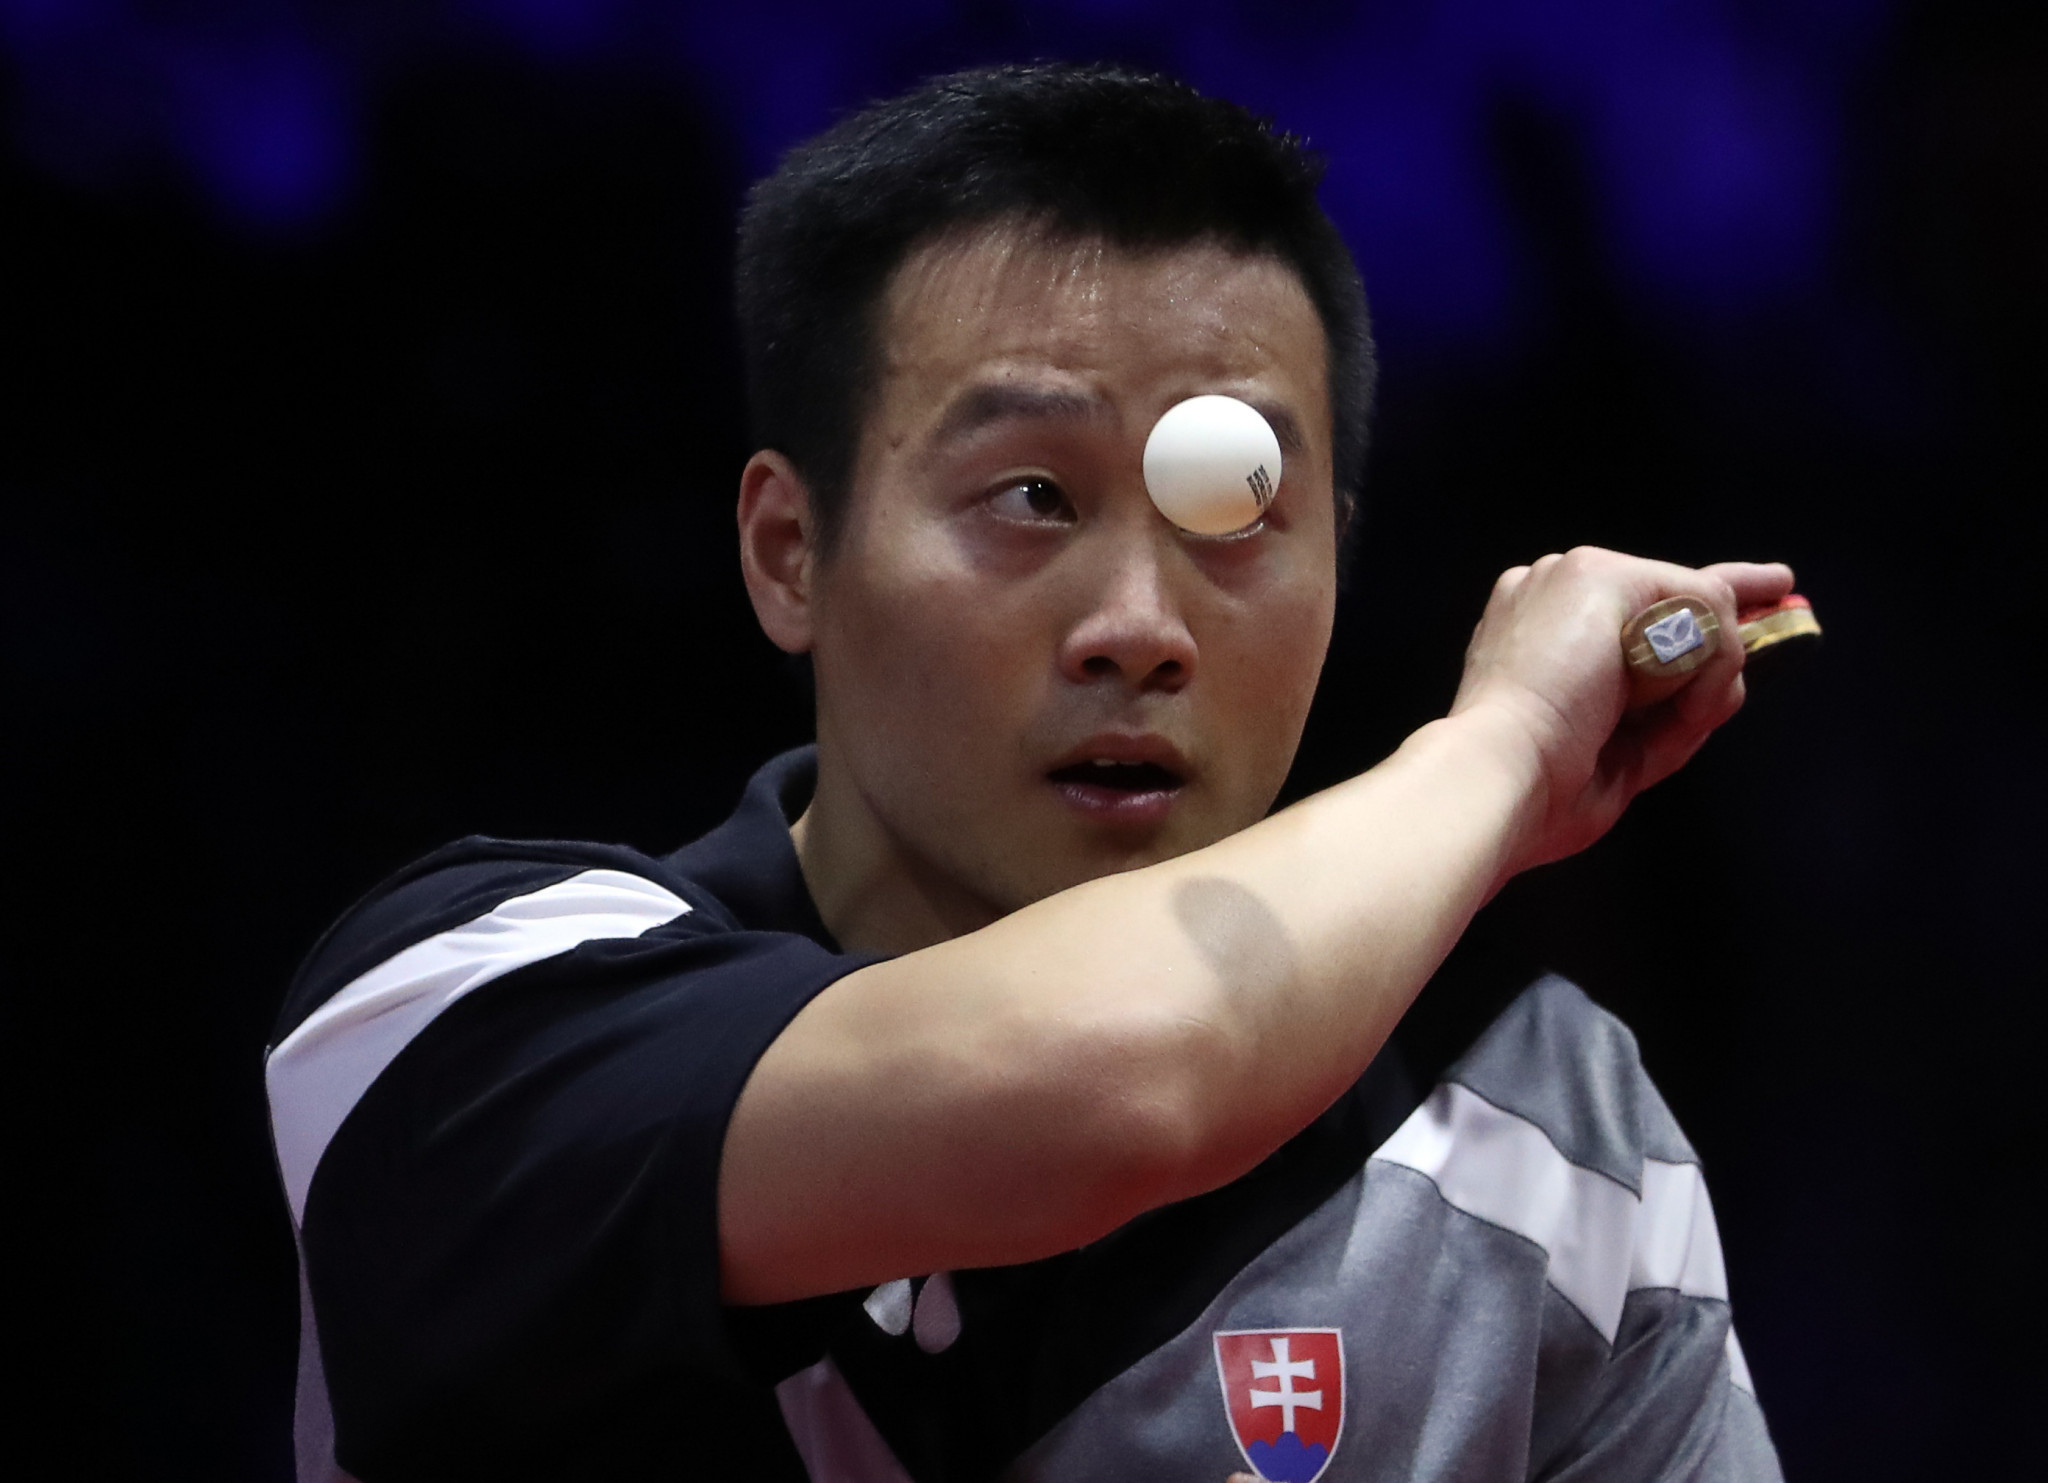 Yang Wang of Slovakia was eliminated from the men's singles for breaching COVID-19 regulations ©Getty Images